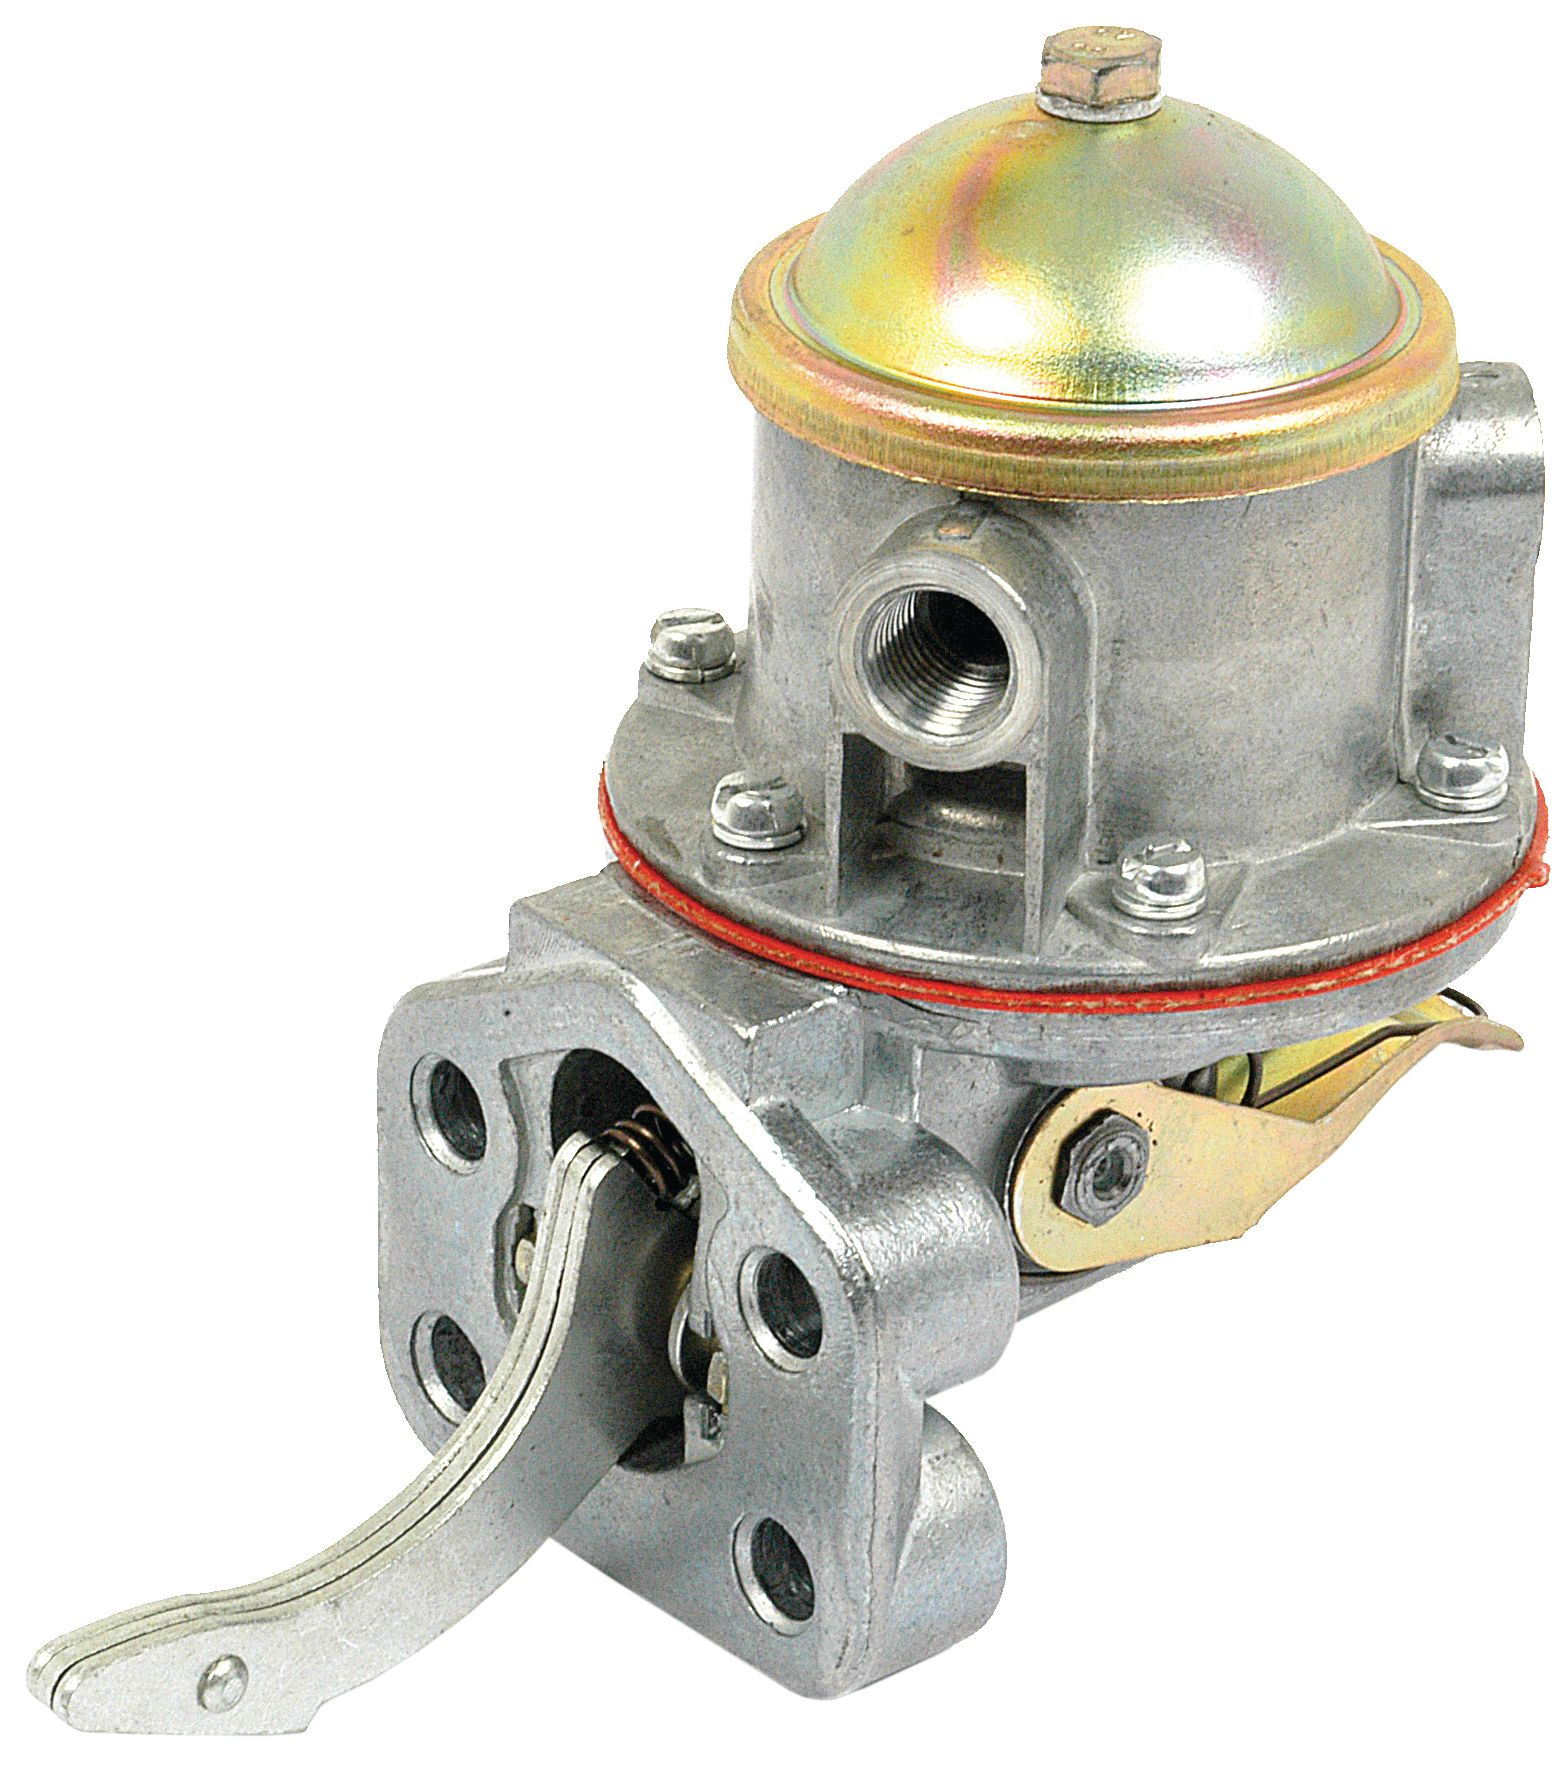 WHITE OLIVER FUEL PUMP (4 HOLE) 40565